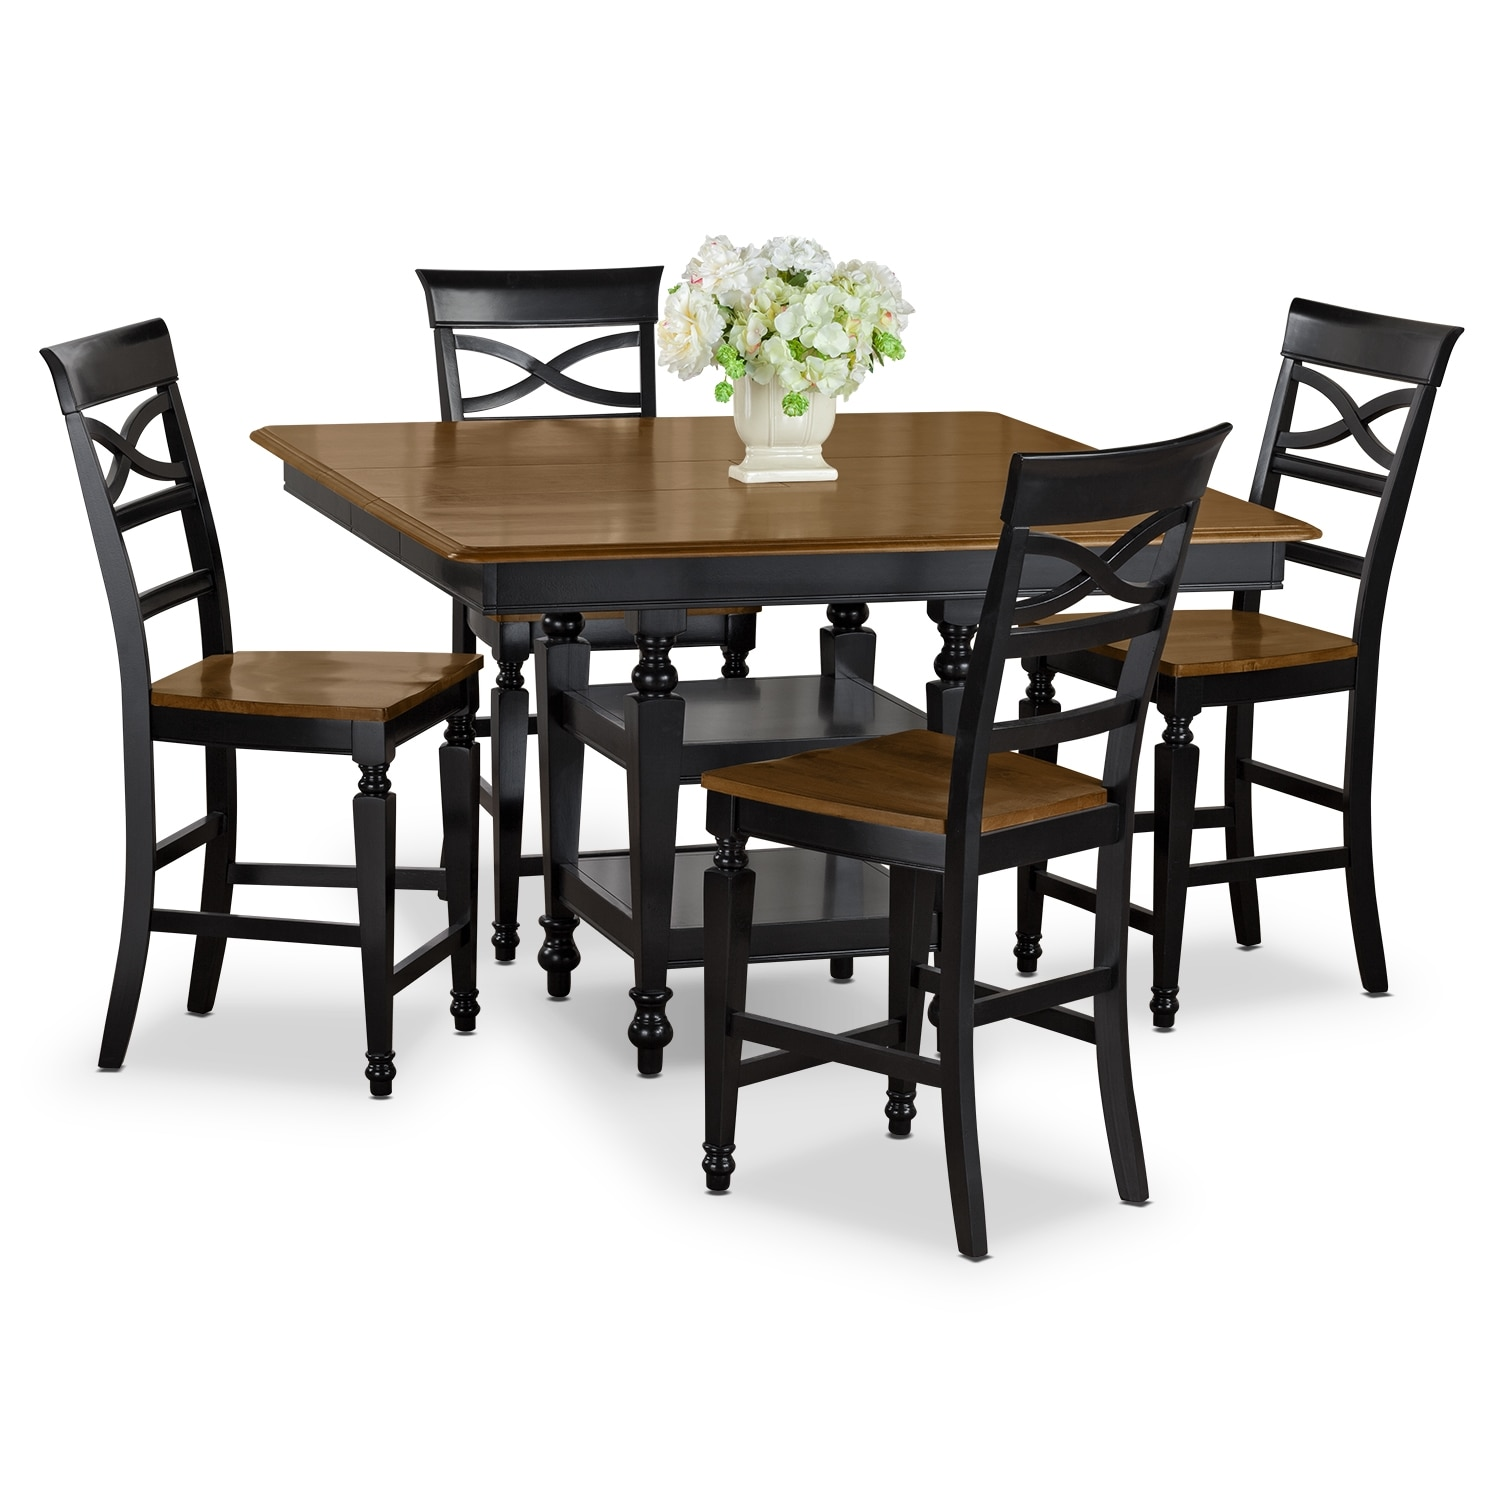 Dining Room Furniture - Chesapeake 5 Pc. Counter-Height Dinette